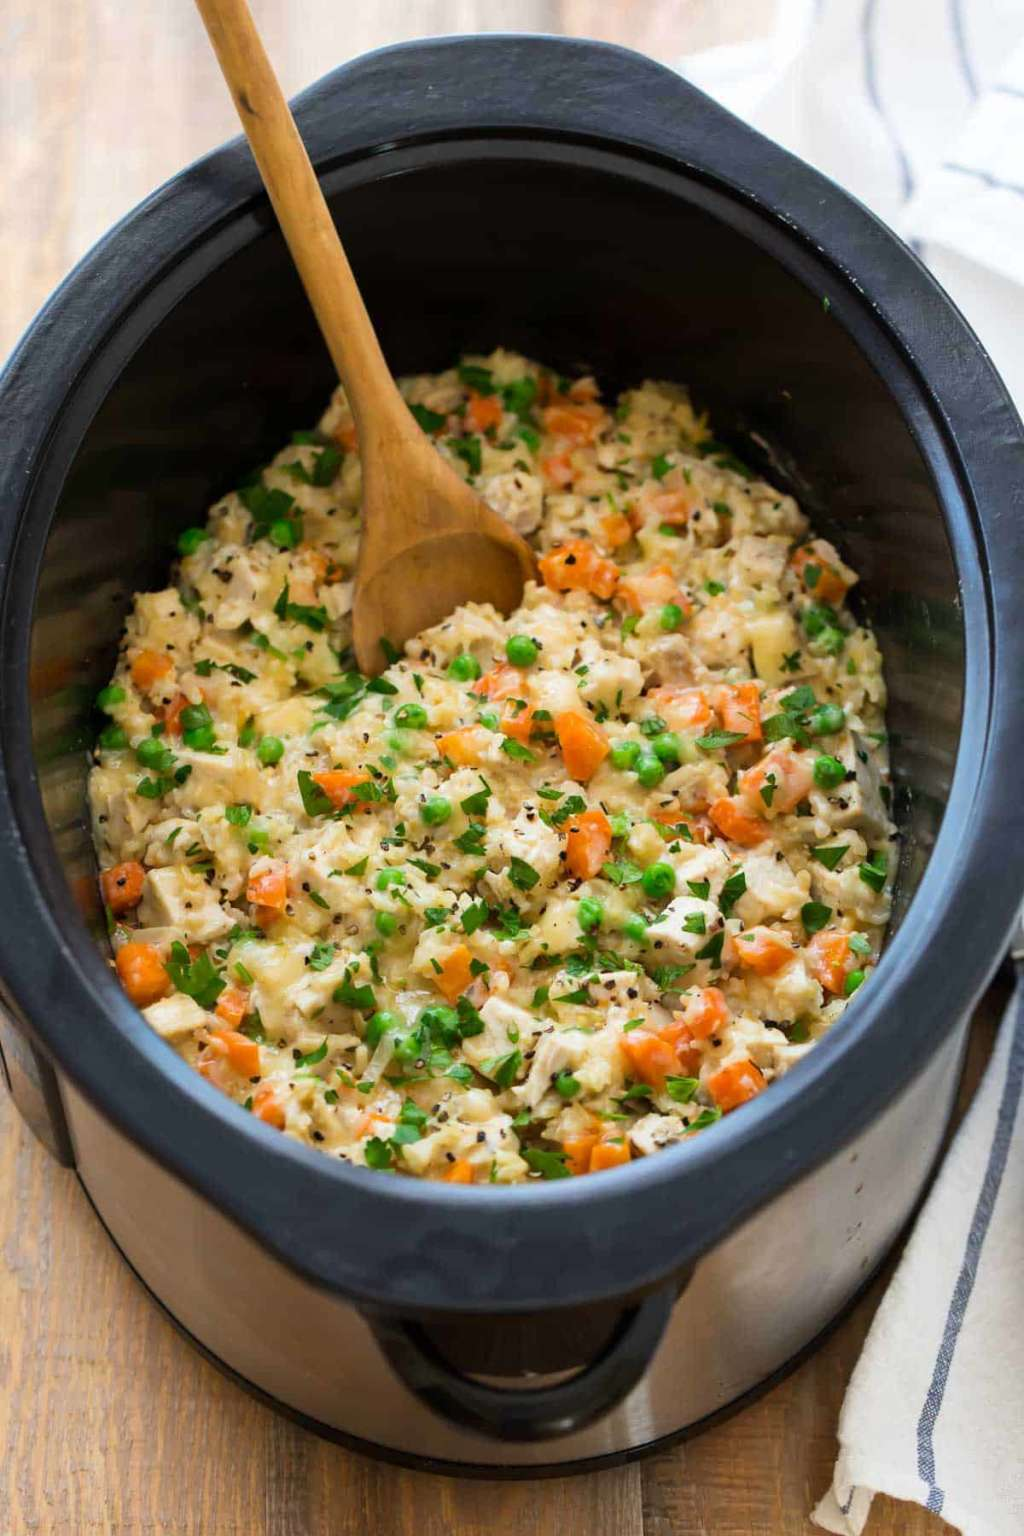 This Slow Cooker Chicken & Rice Is the Easy Meal You Crave